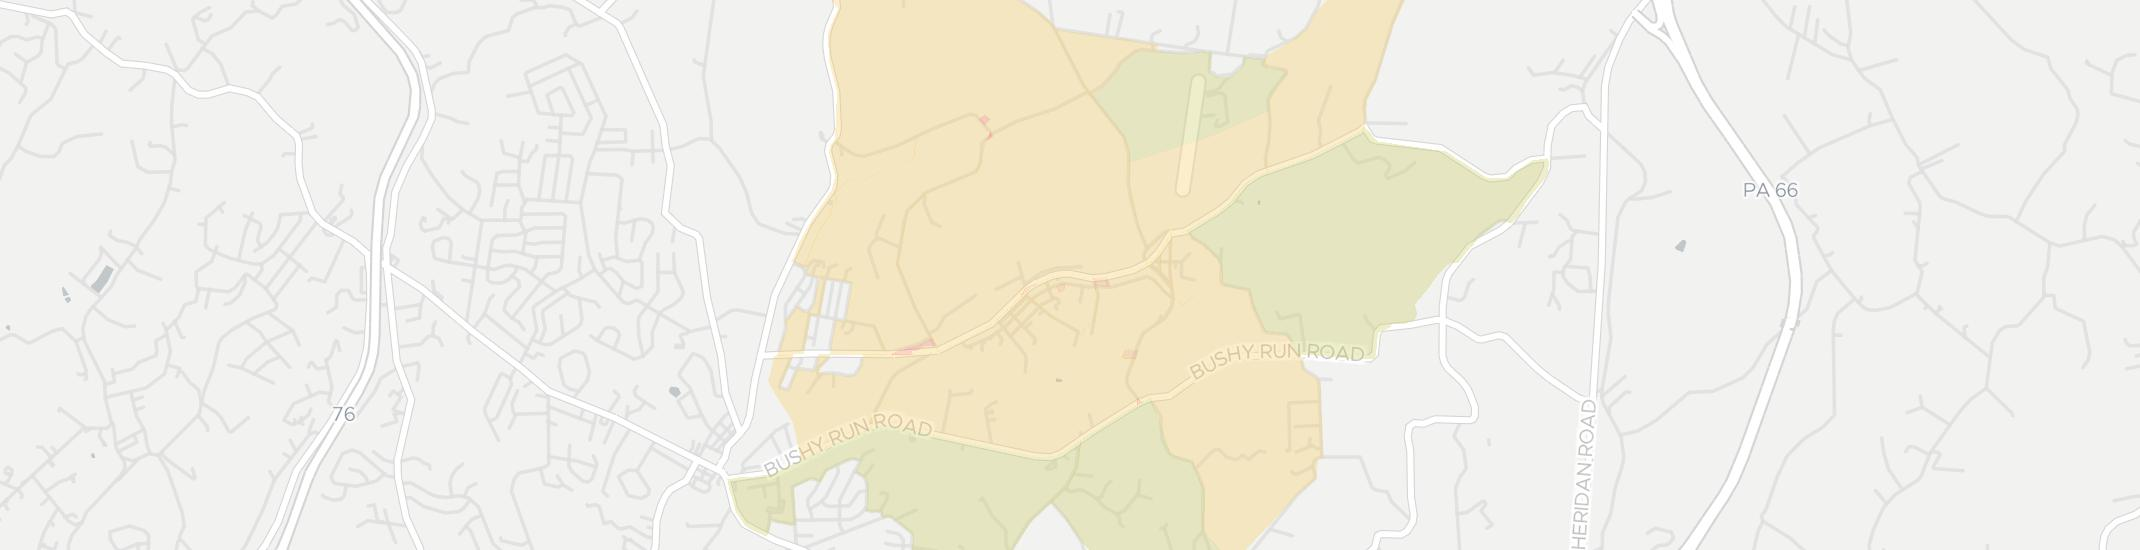 Claridge Internet Competition Map. Click for interactive map.